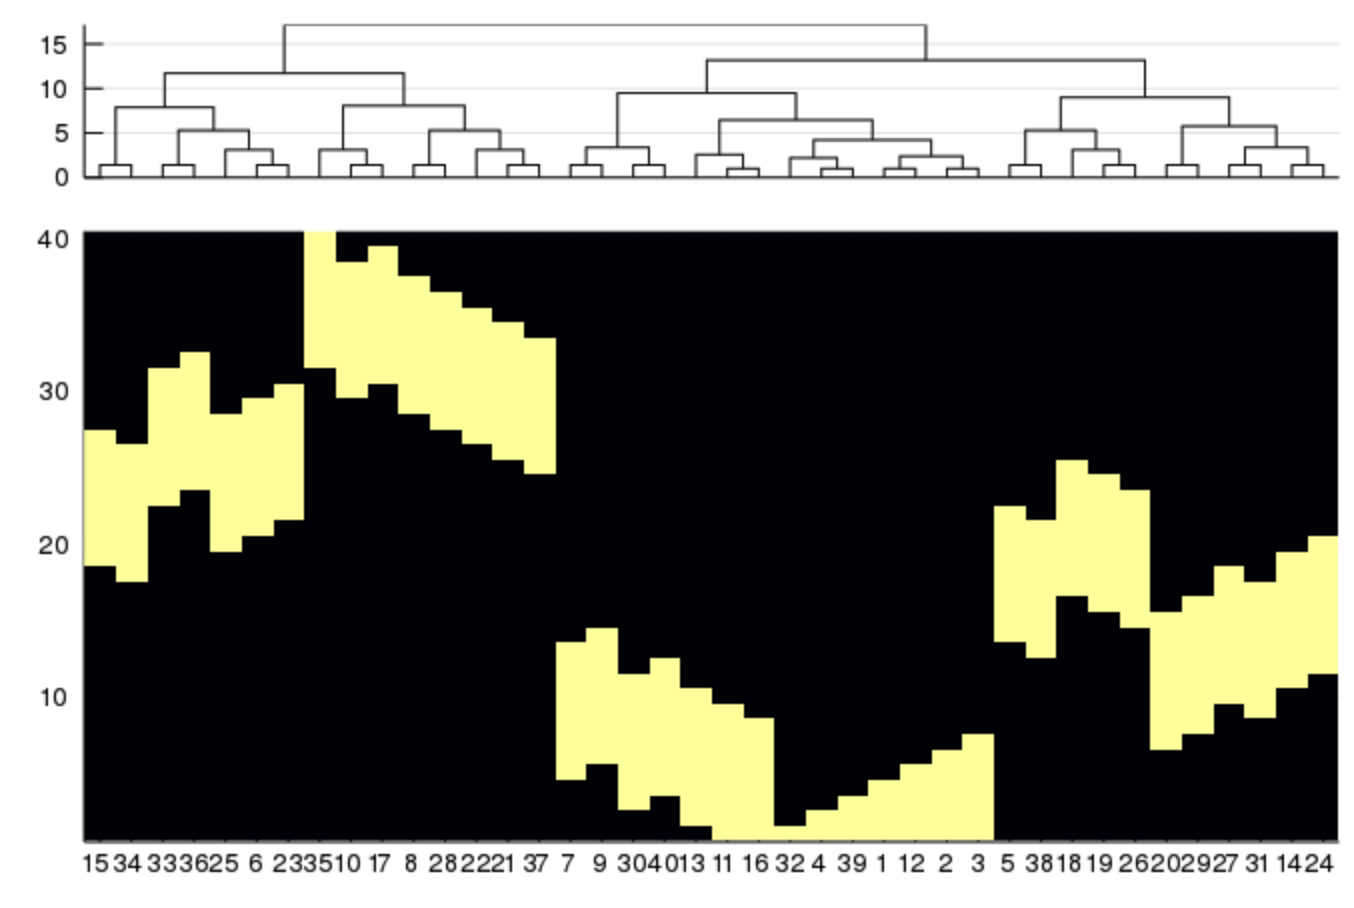 heatmap dendrogram non-optimal